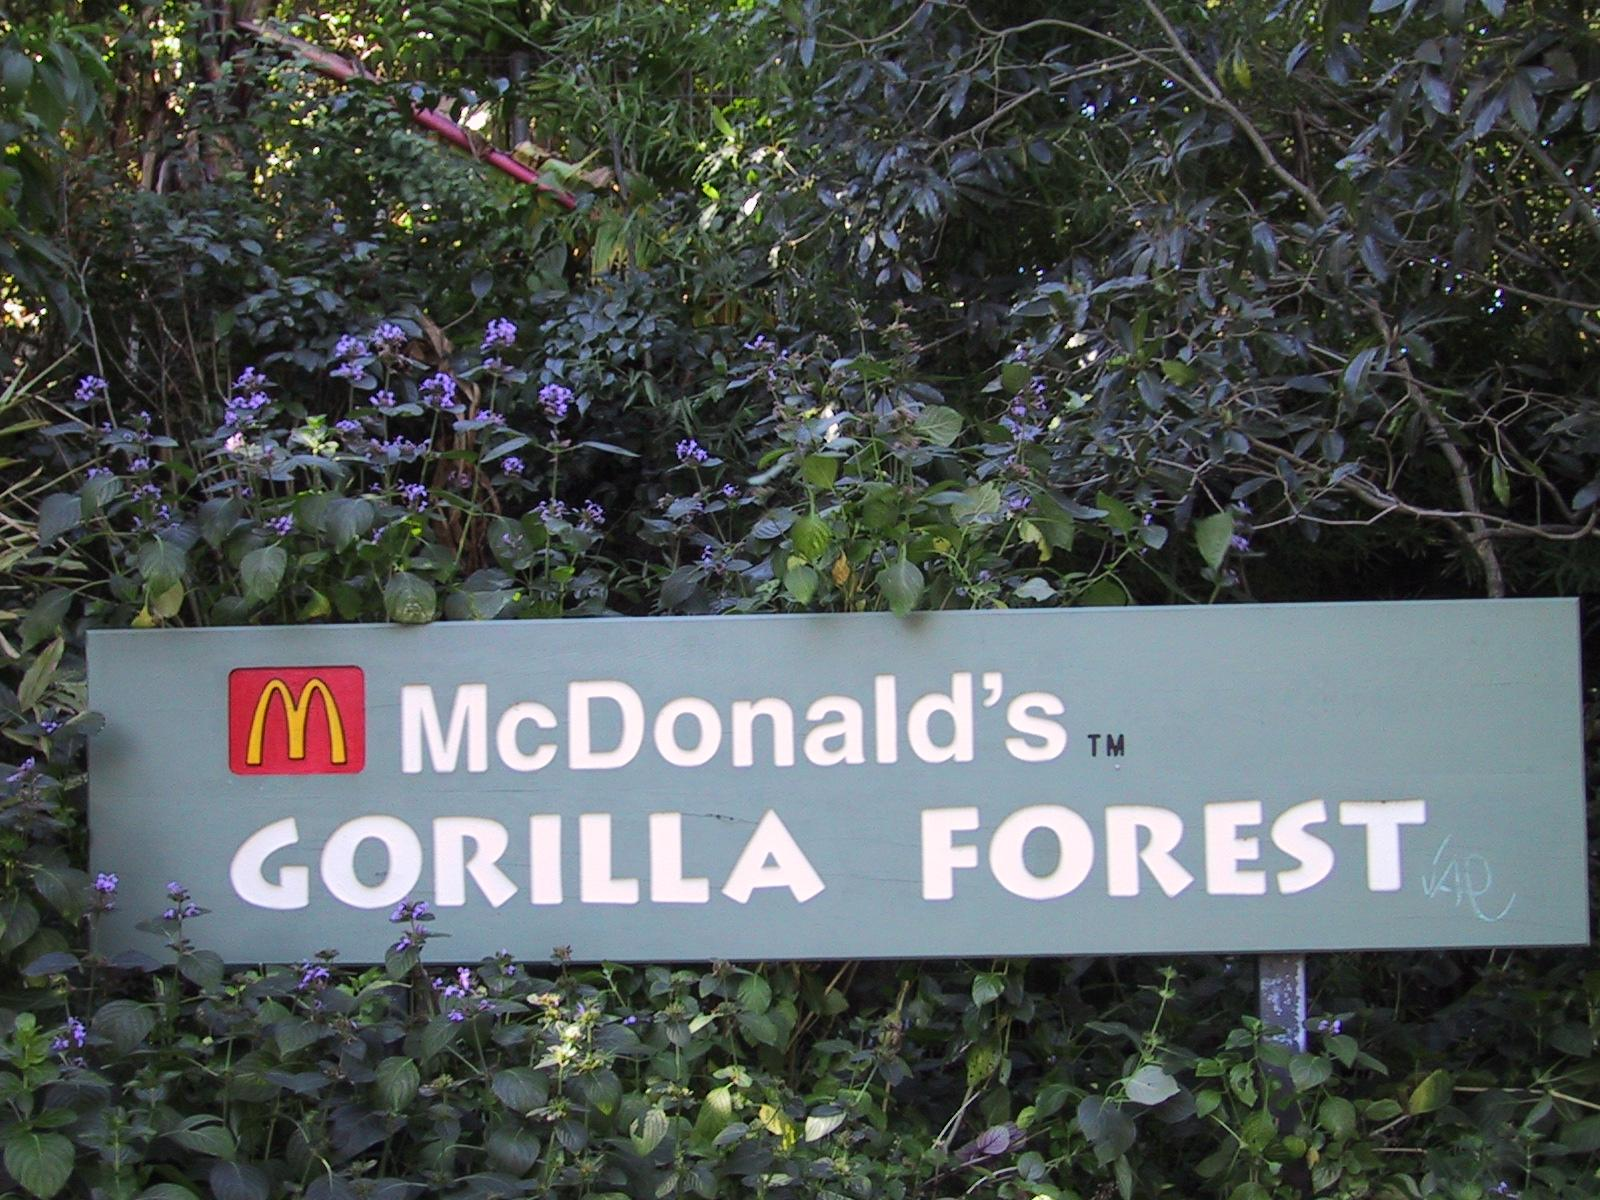 mcdonald s gorilla forest author greenspun philip